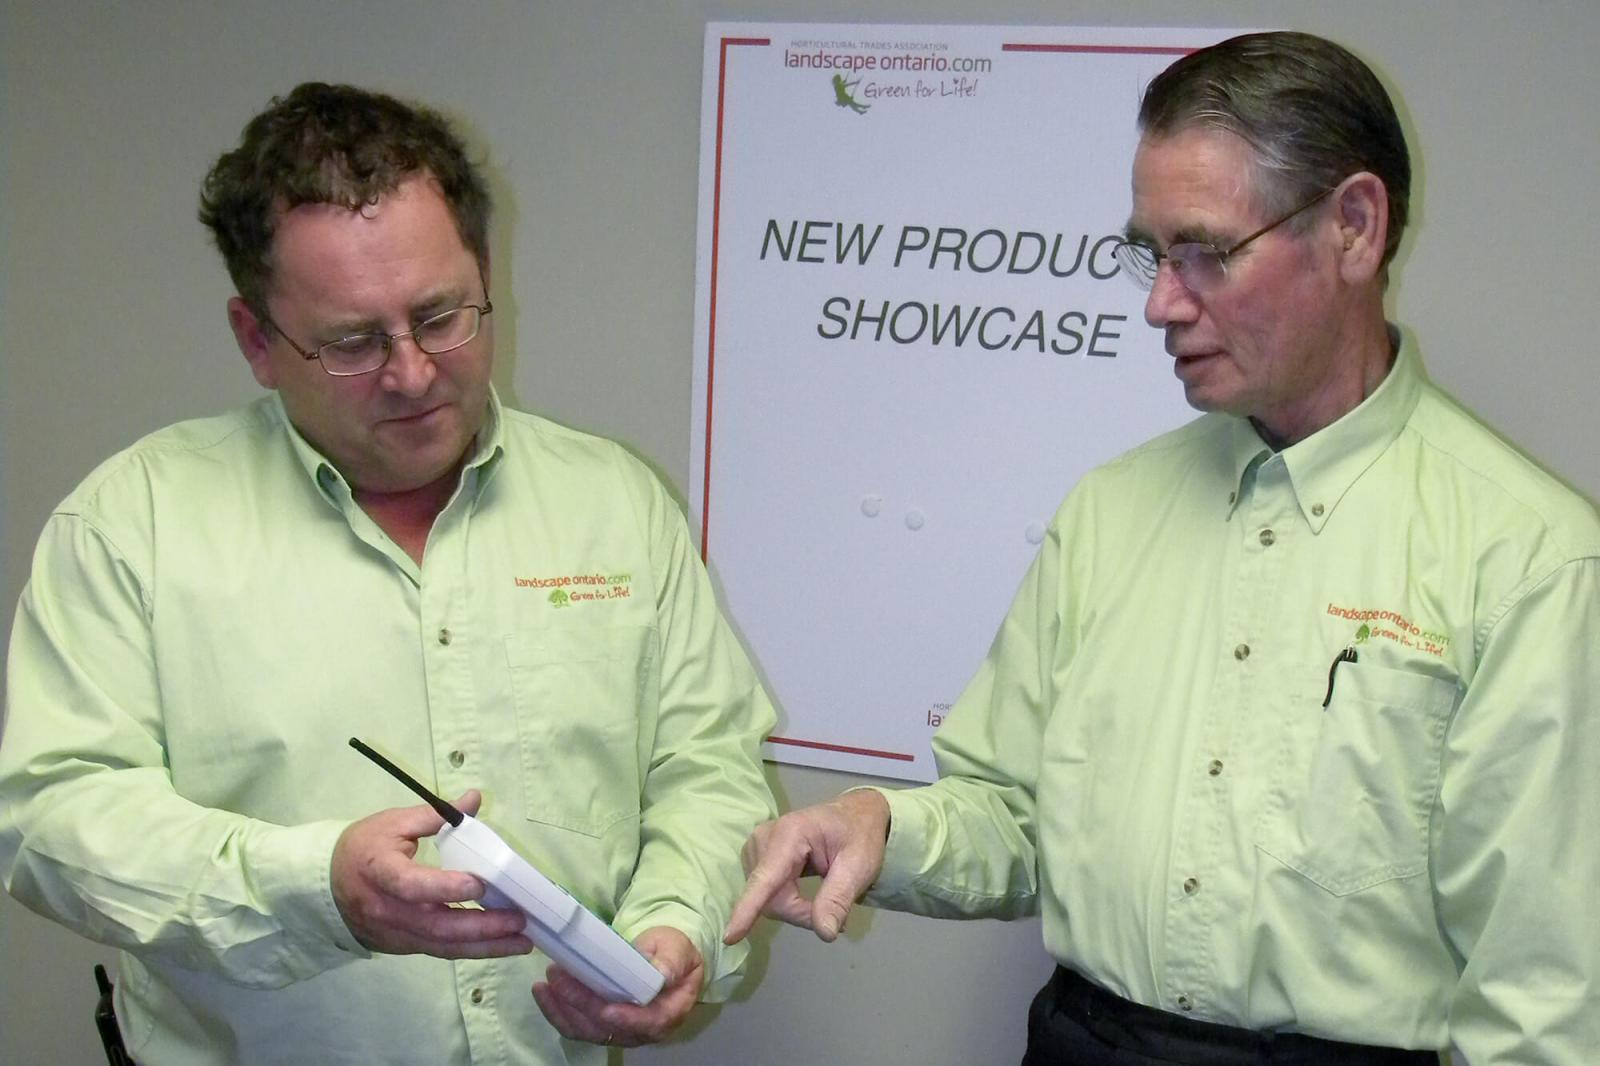 LO show committee members, Terry Childs (left) and Klaas Sikkema look over one of the new products that will be on display at this year's New Product Showcase at Congress 2011.